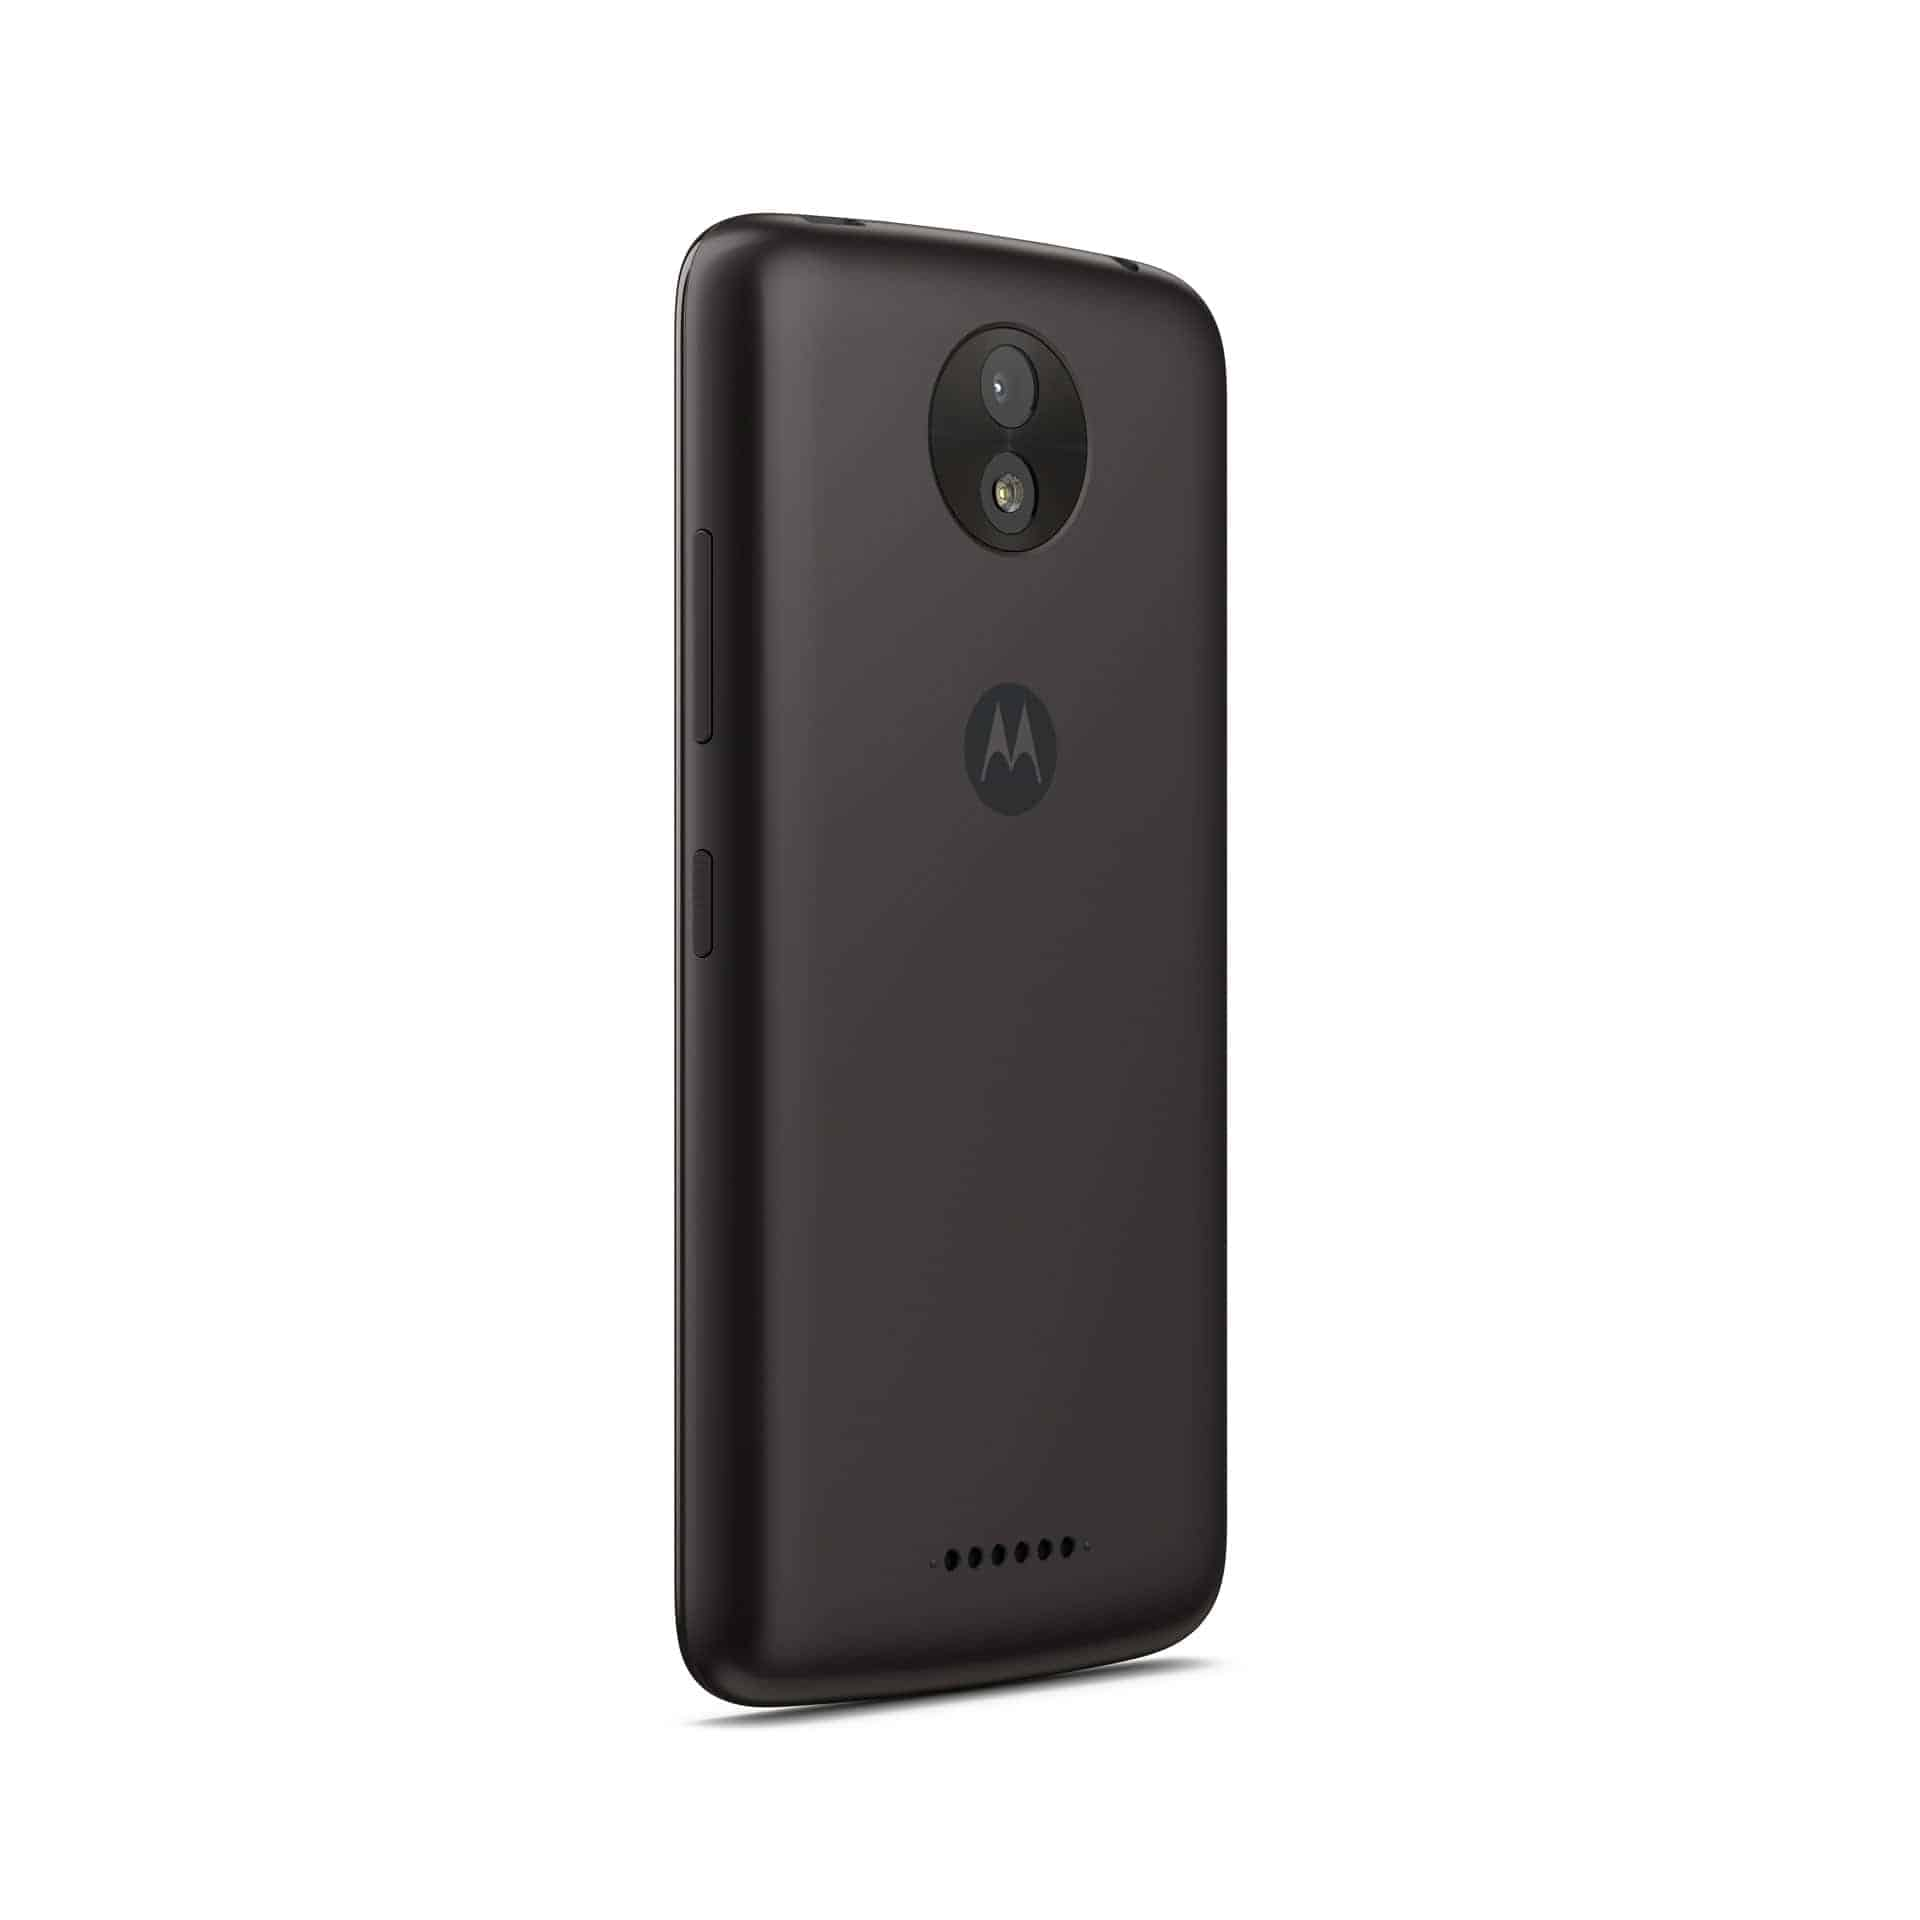 Moto C Plus Starry Black Back Angle